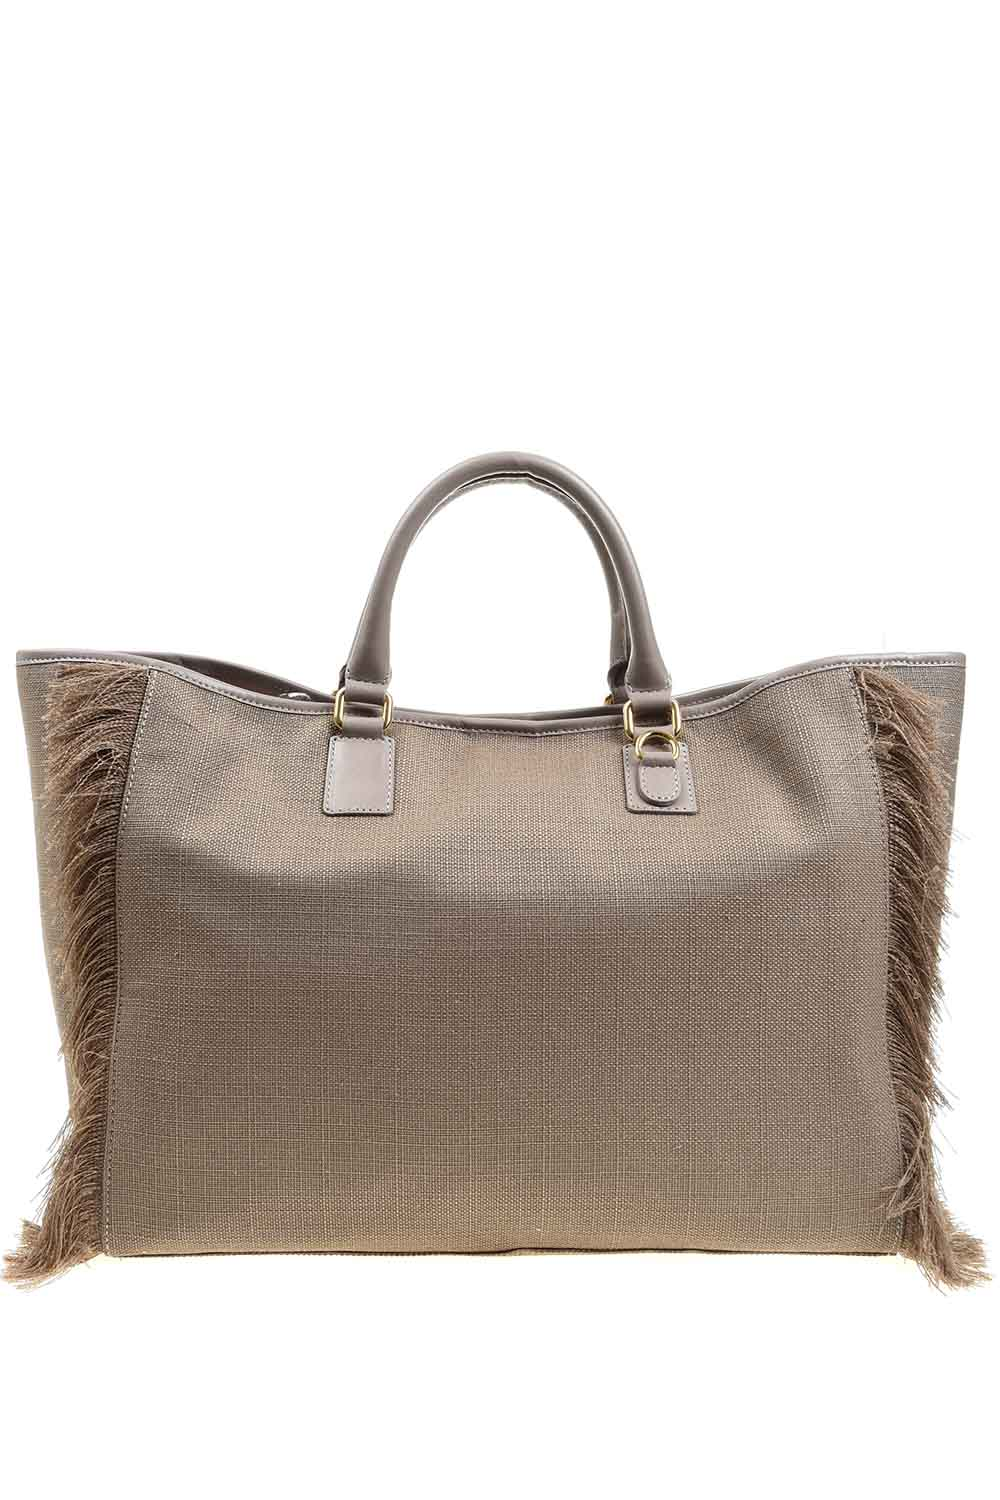 MIZALLE Tassel Detail Large Bag (Beige) (1)